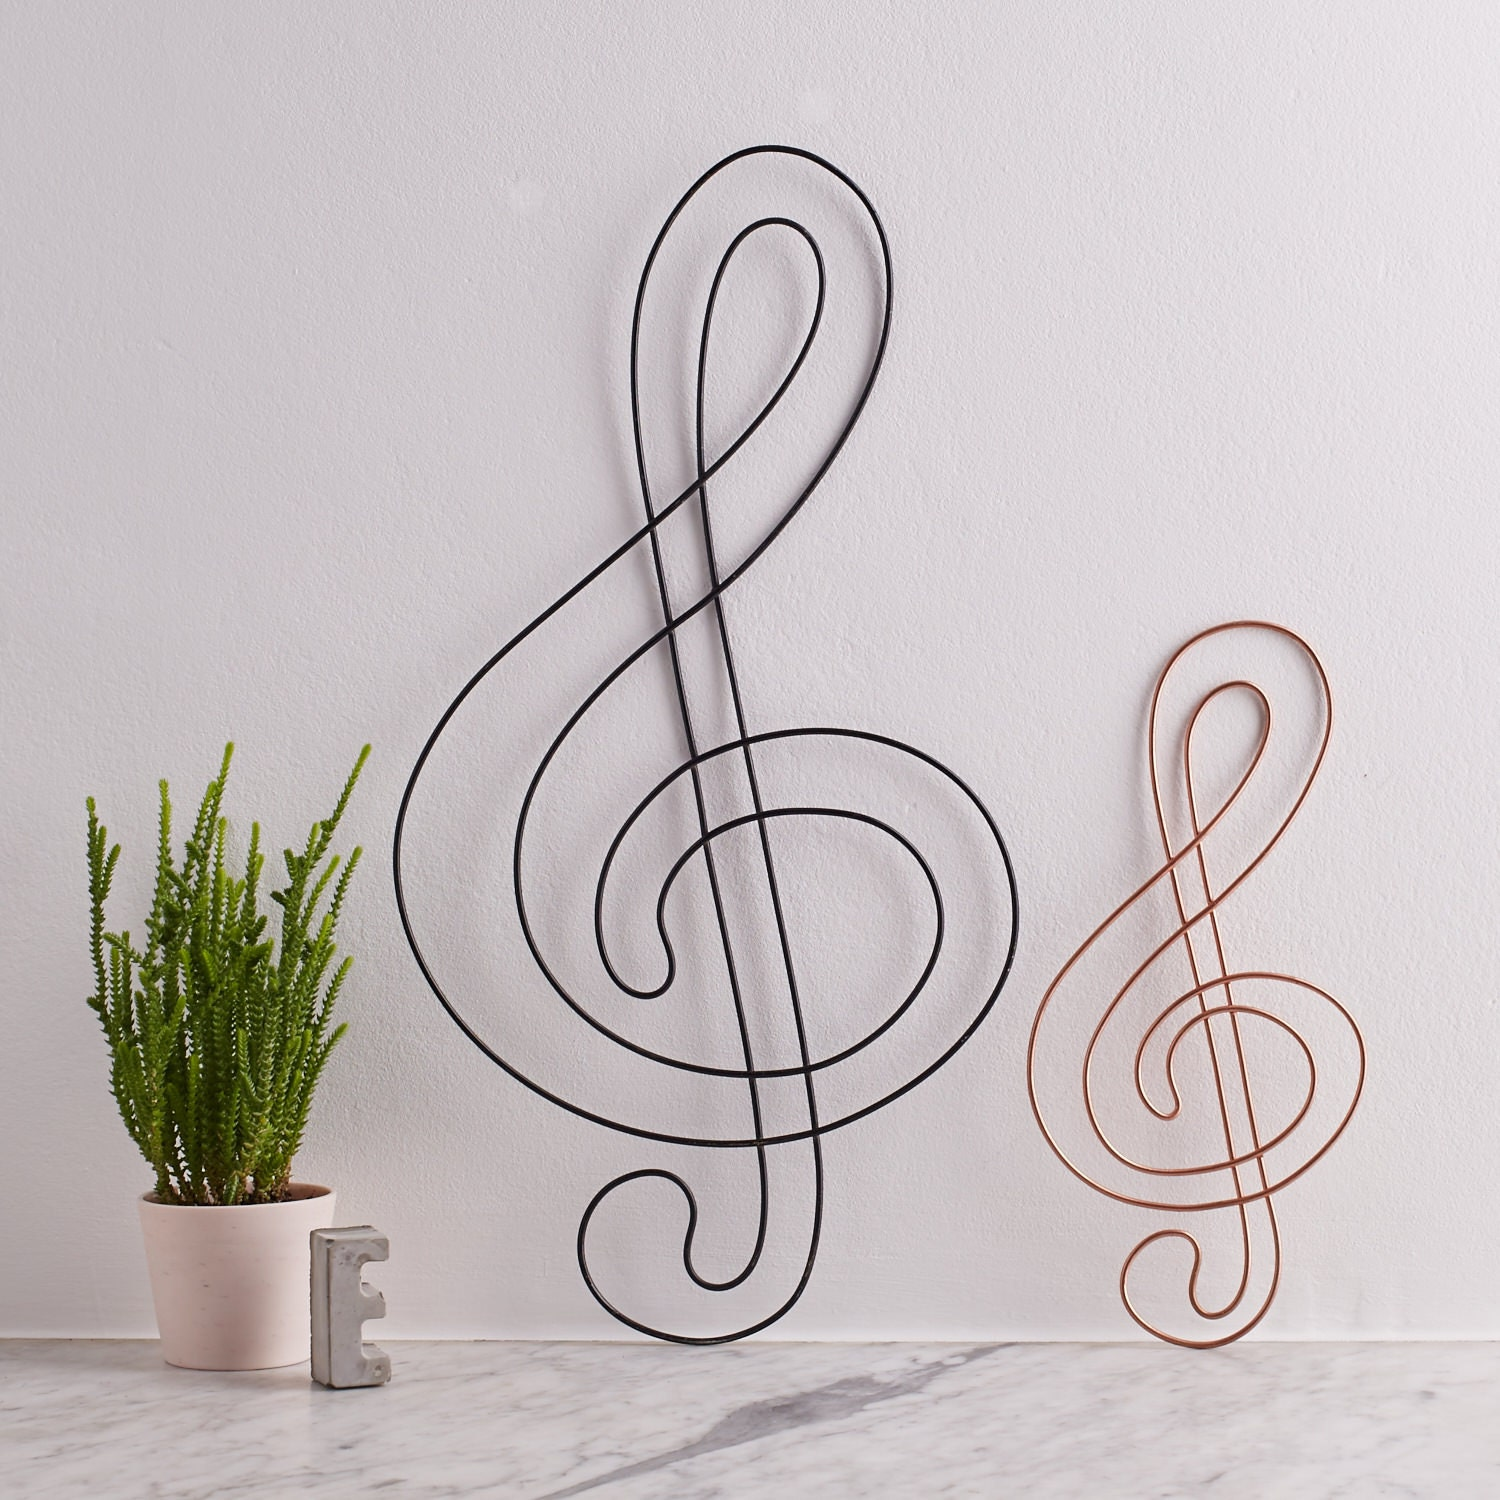 Wire treble clef treble clef music gift gift for musicians zoom amipublicfo Image collections